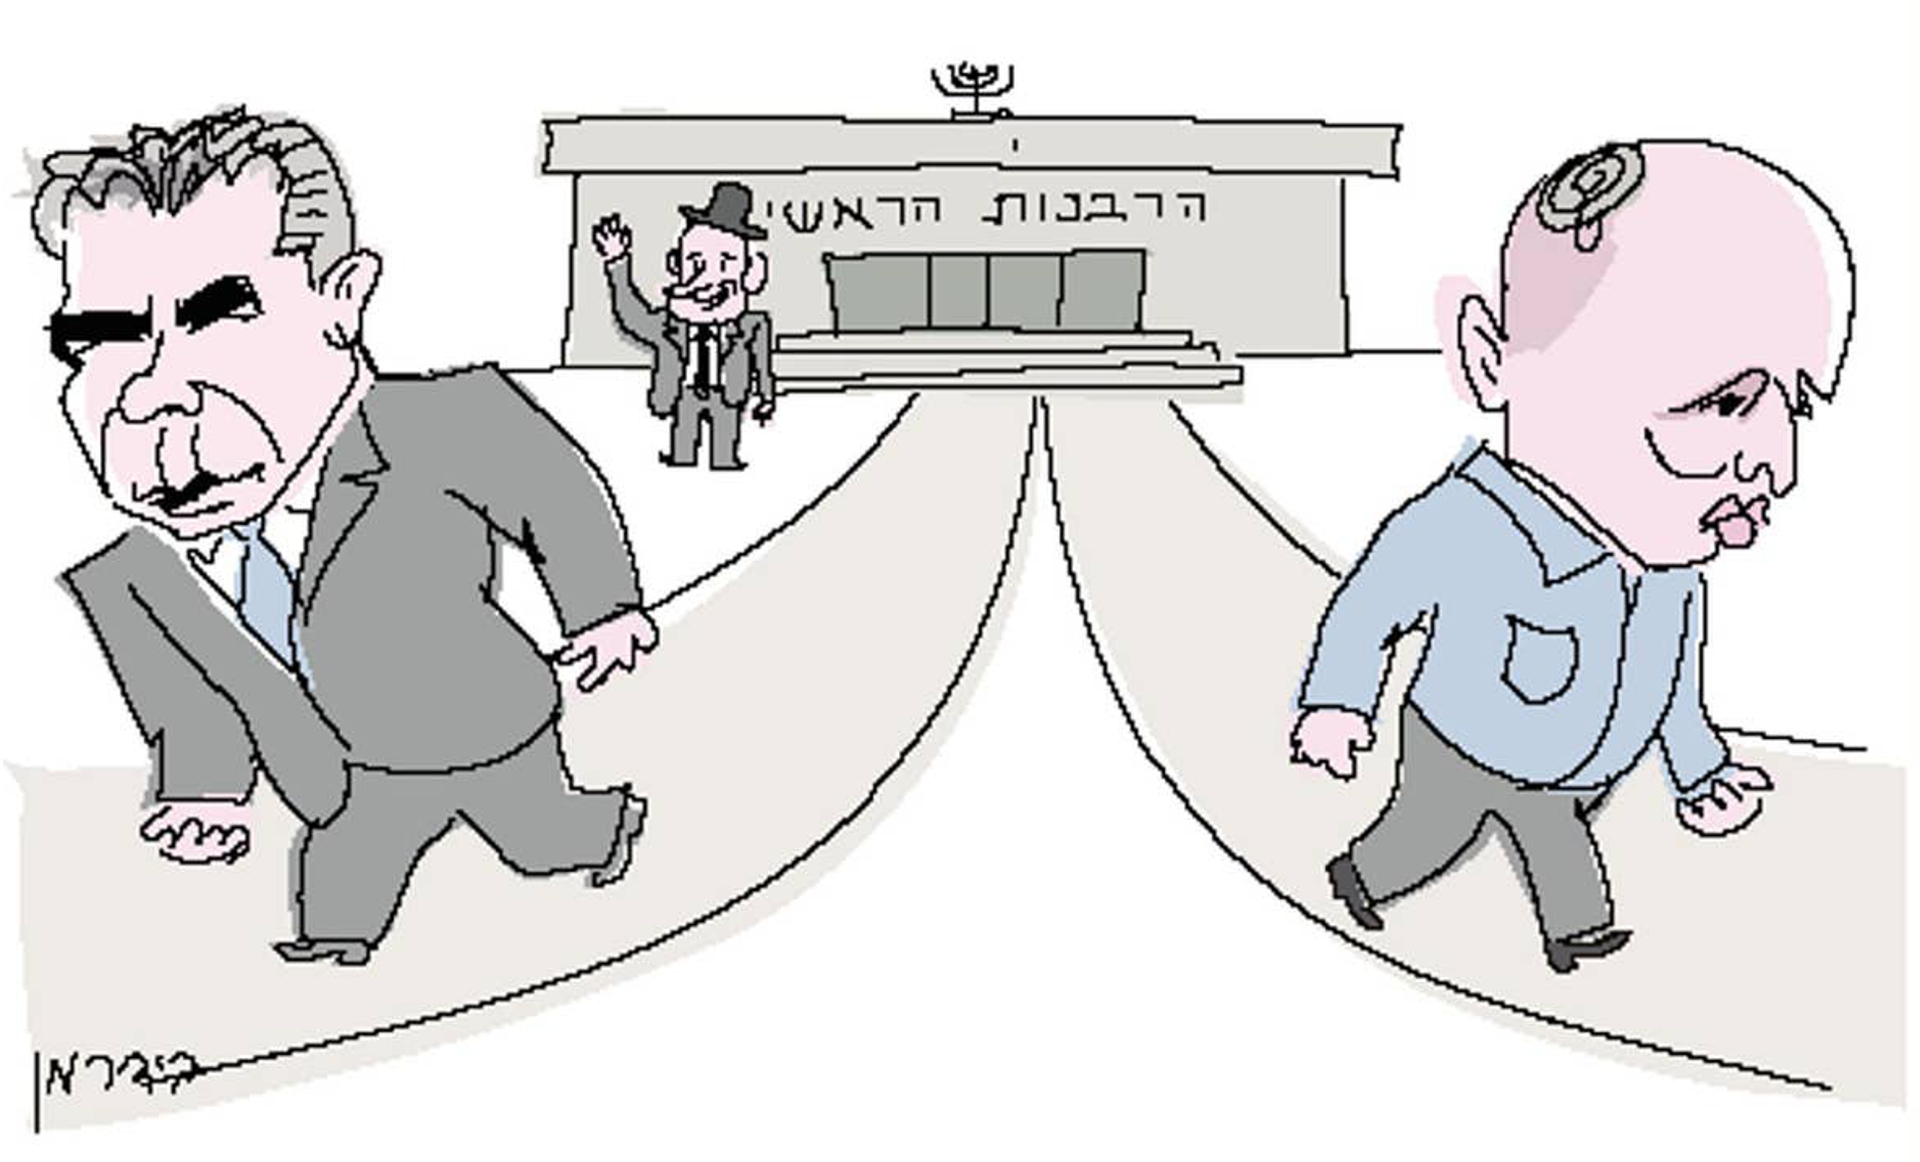 A Haaretz cartoon published in October 2013, showing Yair Lapid and Naftali Bennett parting ways outside of a Rabbinate building.